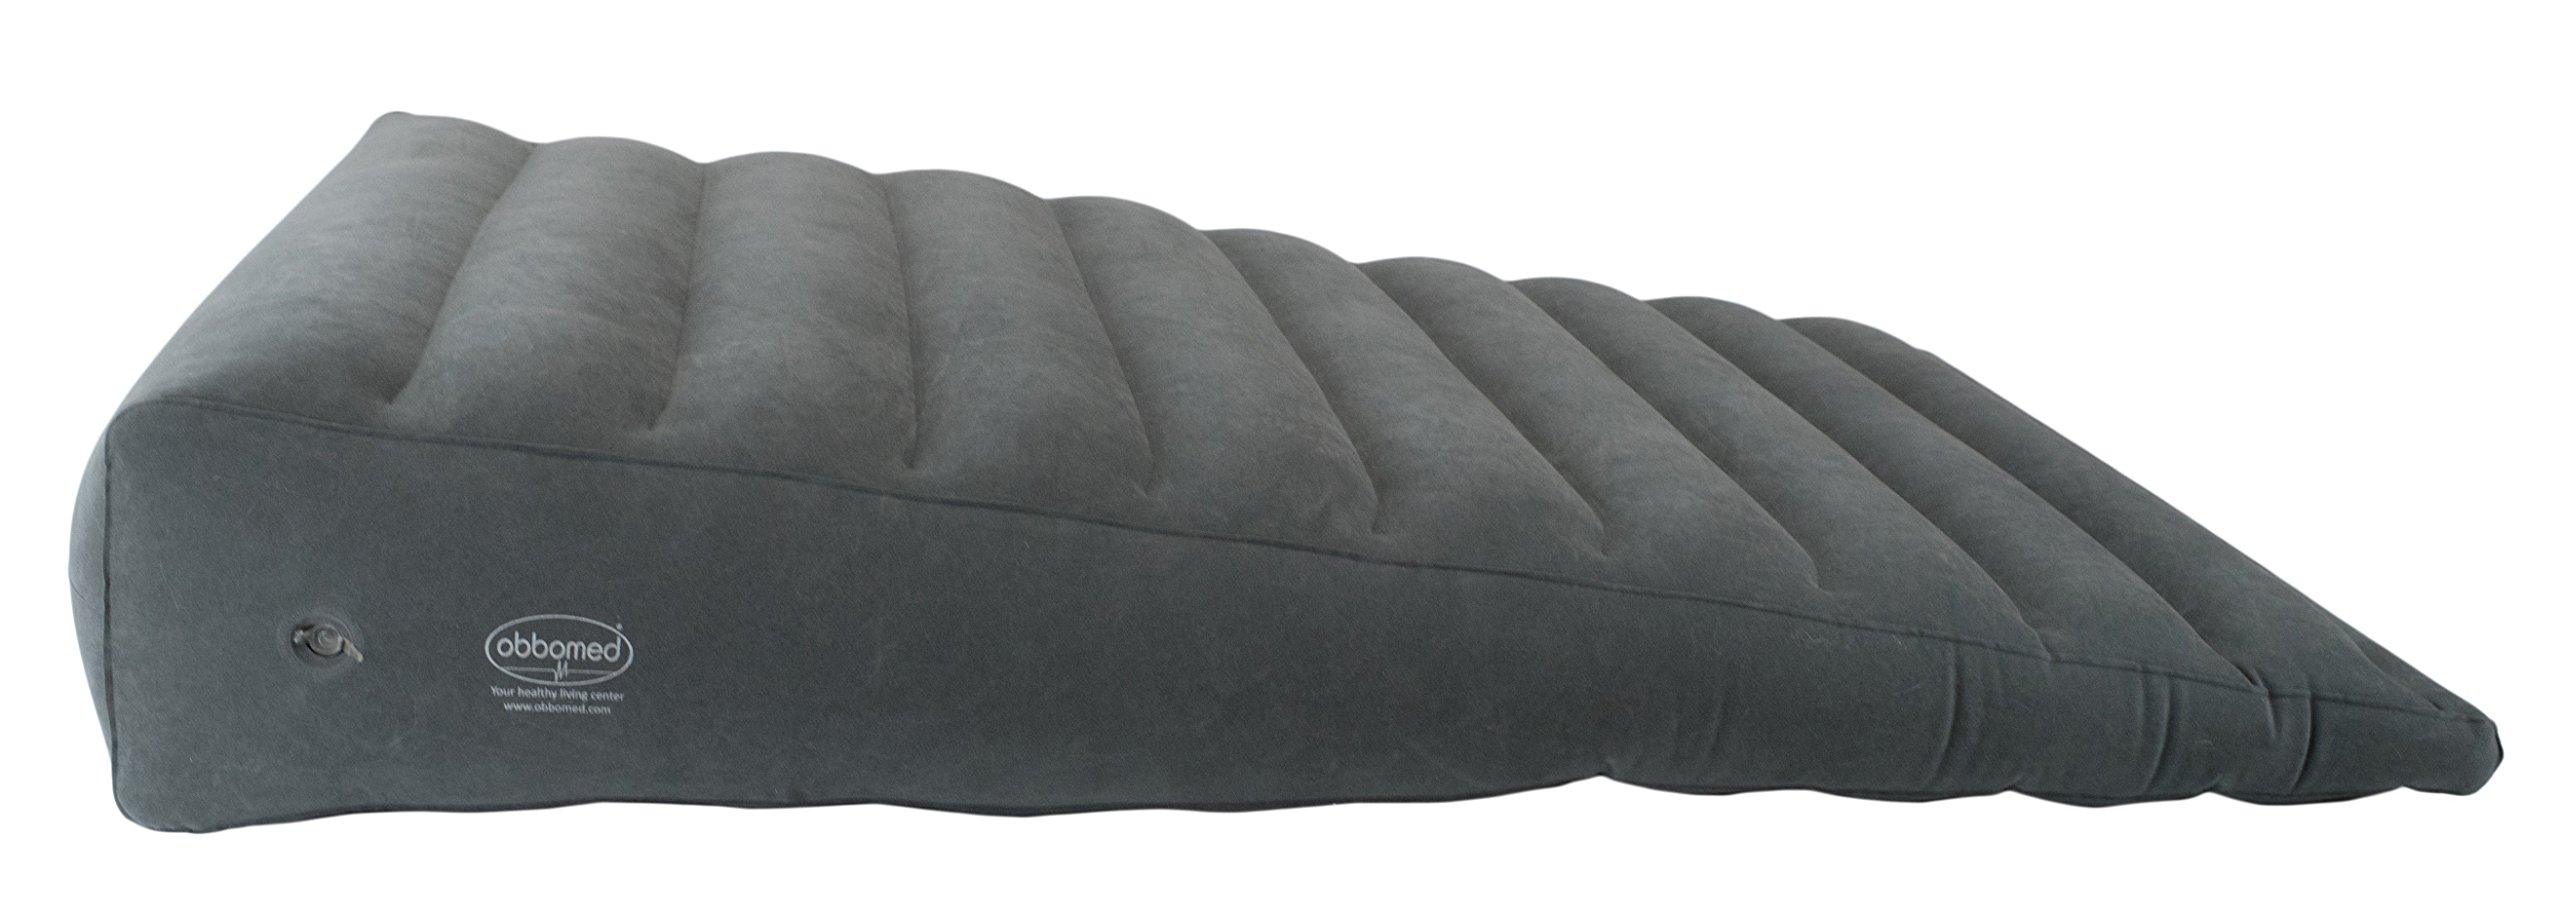 ObboMed HR-7690 Extra Long Wide Inflatable Portable Bed Wedge Pillow w/Velour Surface Finish, Powerful Pump Included, for Sleep, Travel, Horizontal Indention Prevent Sliding, 45''x30''x(8''~1.5''), Gray